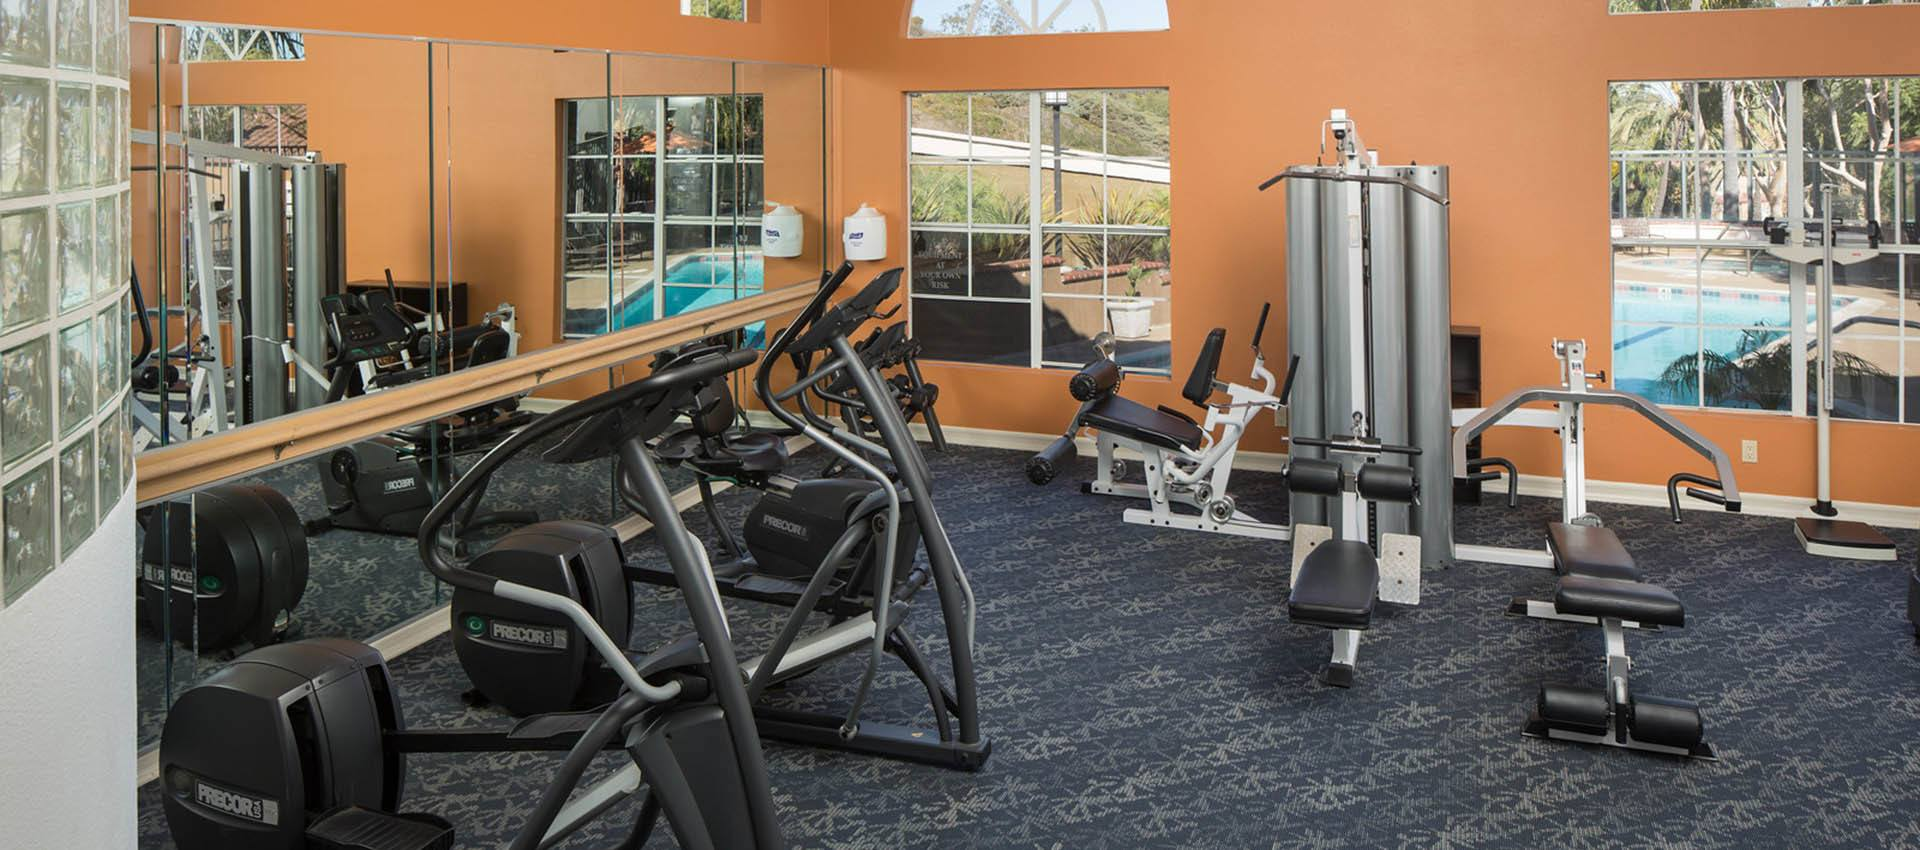 Well Equipped Fitness Center at Niguel Summit Condominium Rentals in Laguna Niguel, CA